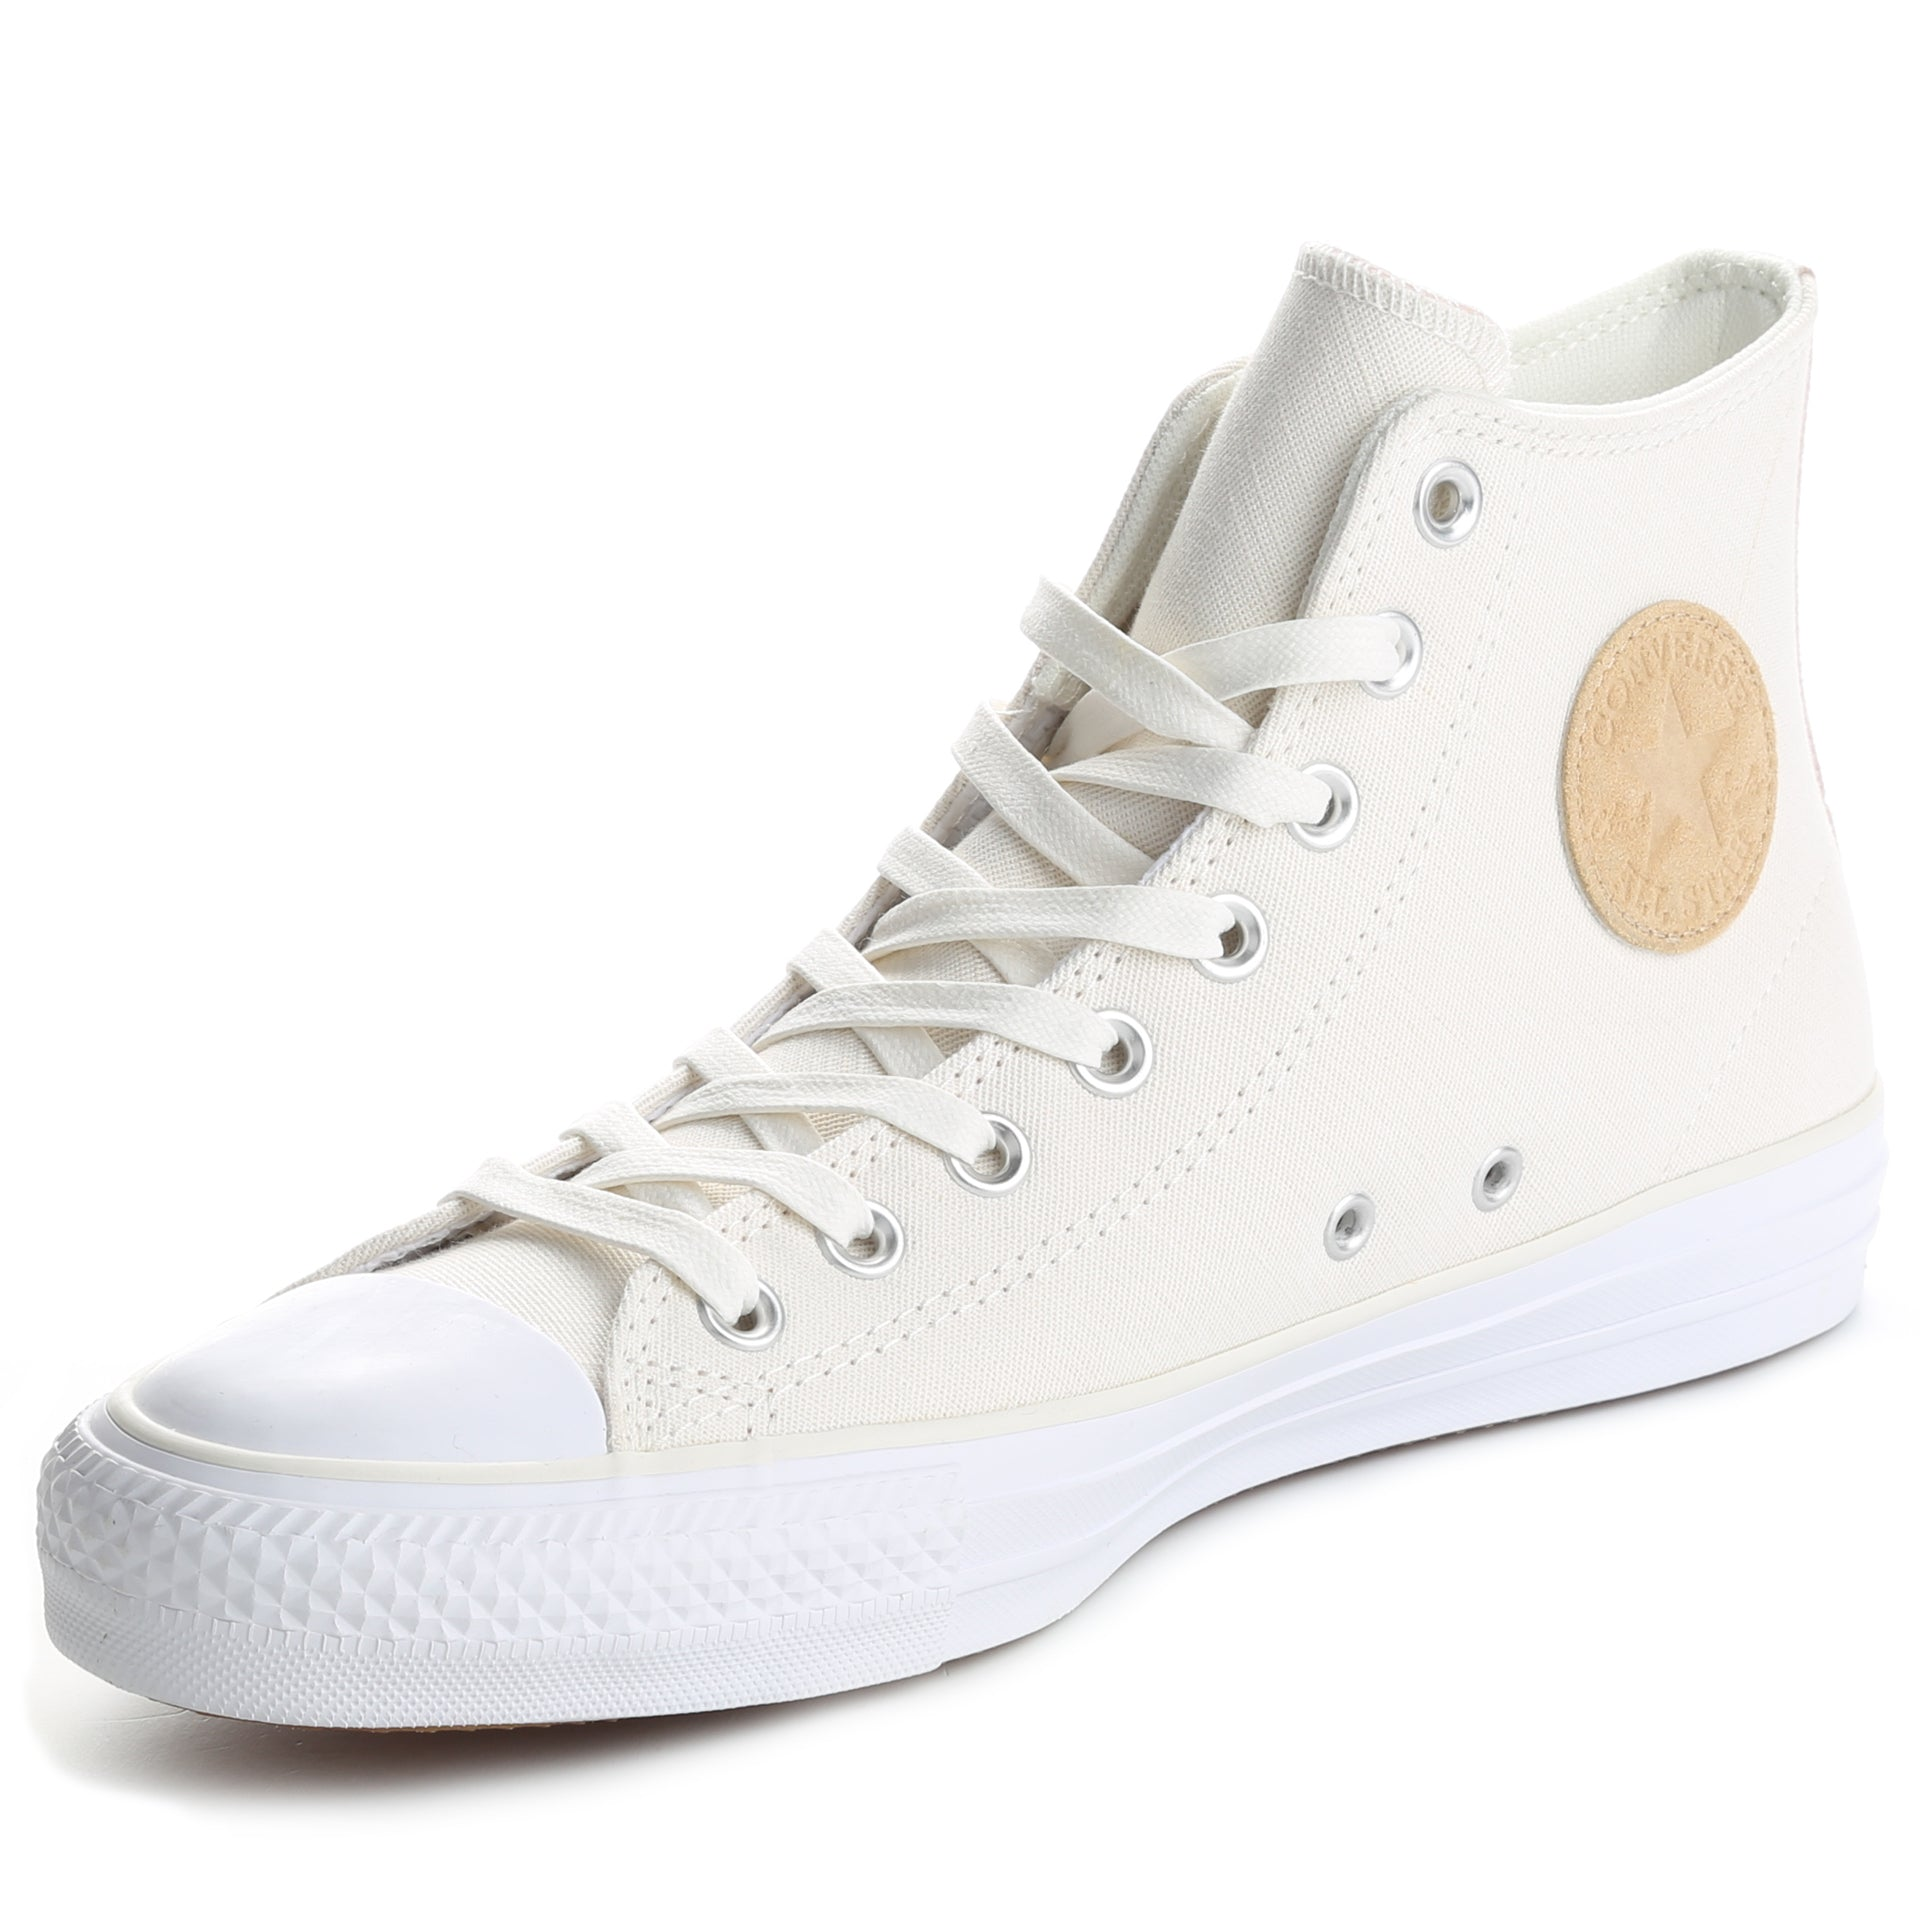 cfb44228aa85 Converse CTAS Pro Suede Backed Twill High Top - Egret Dusk Pink ...